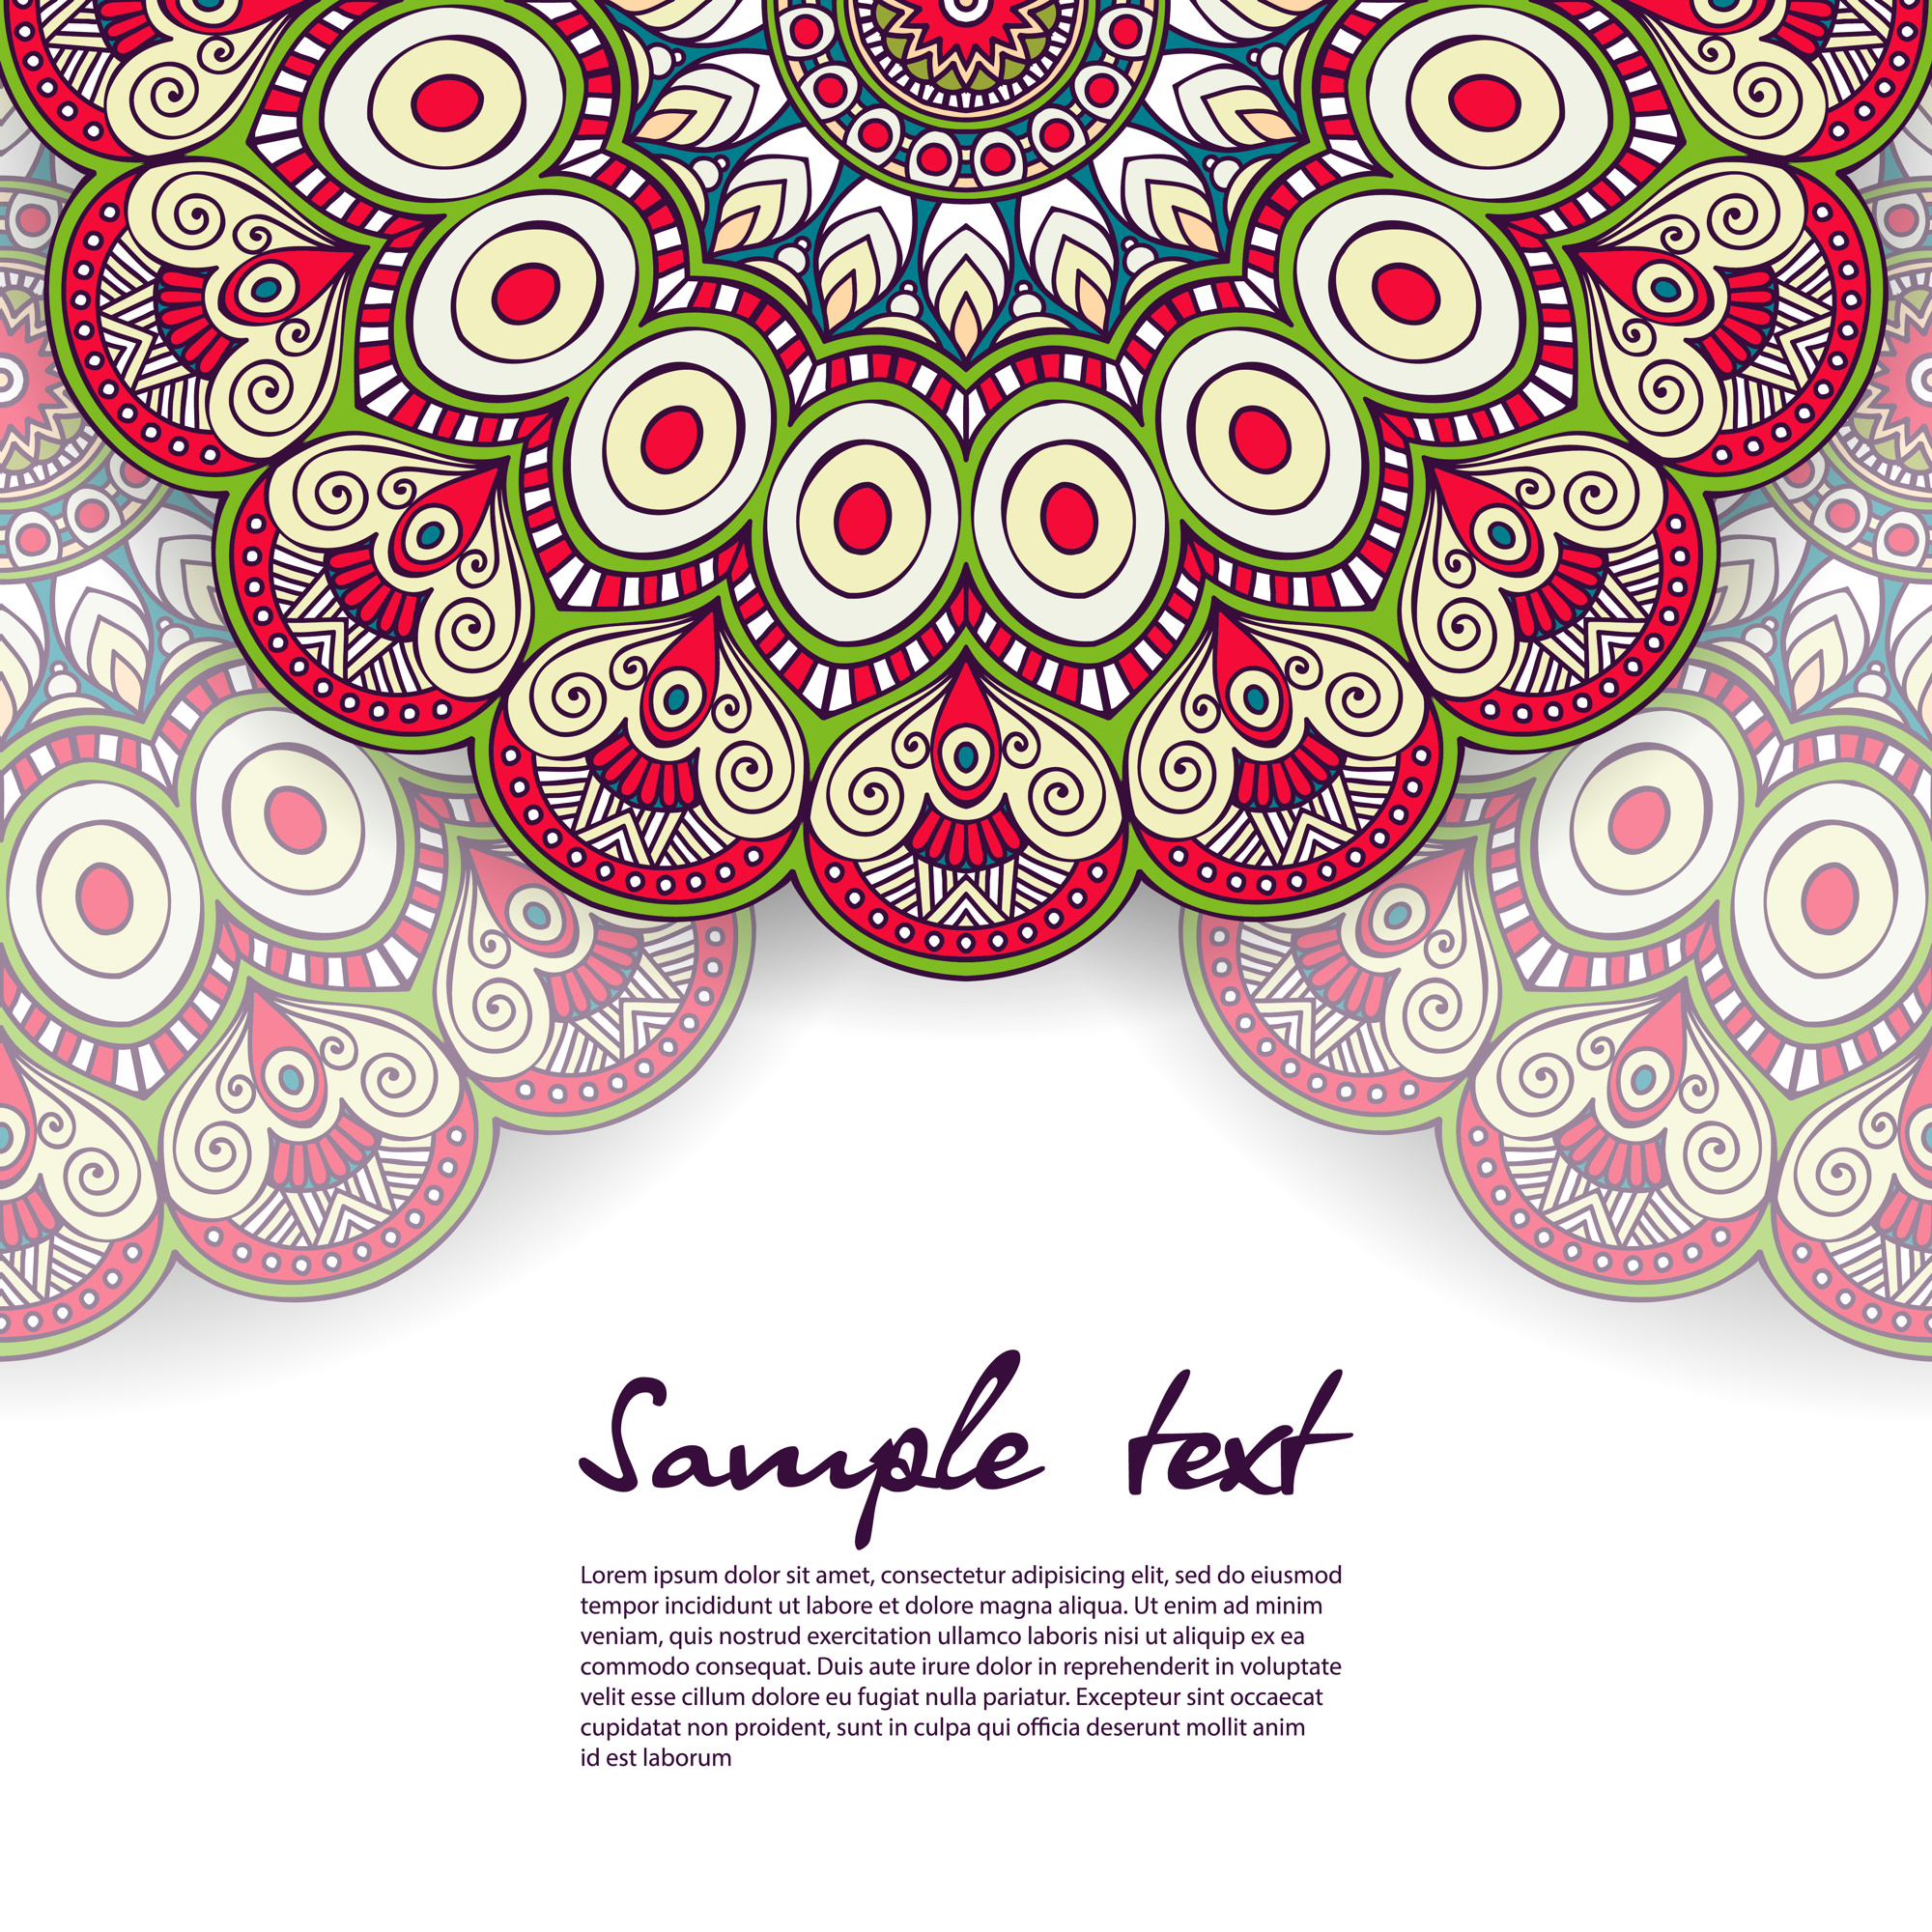 Floral mandala design with text template